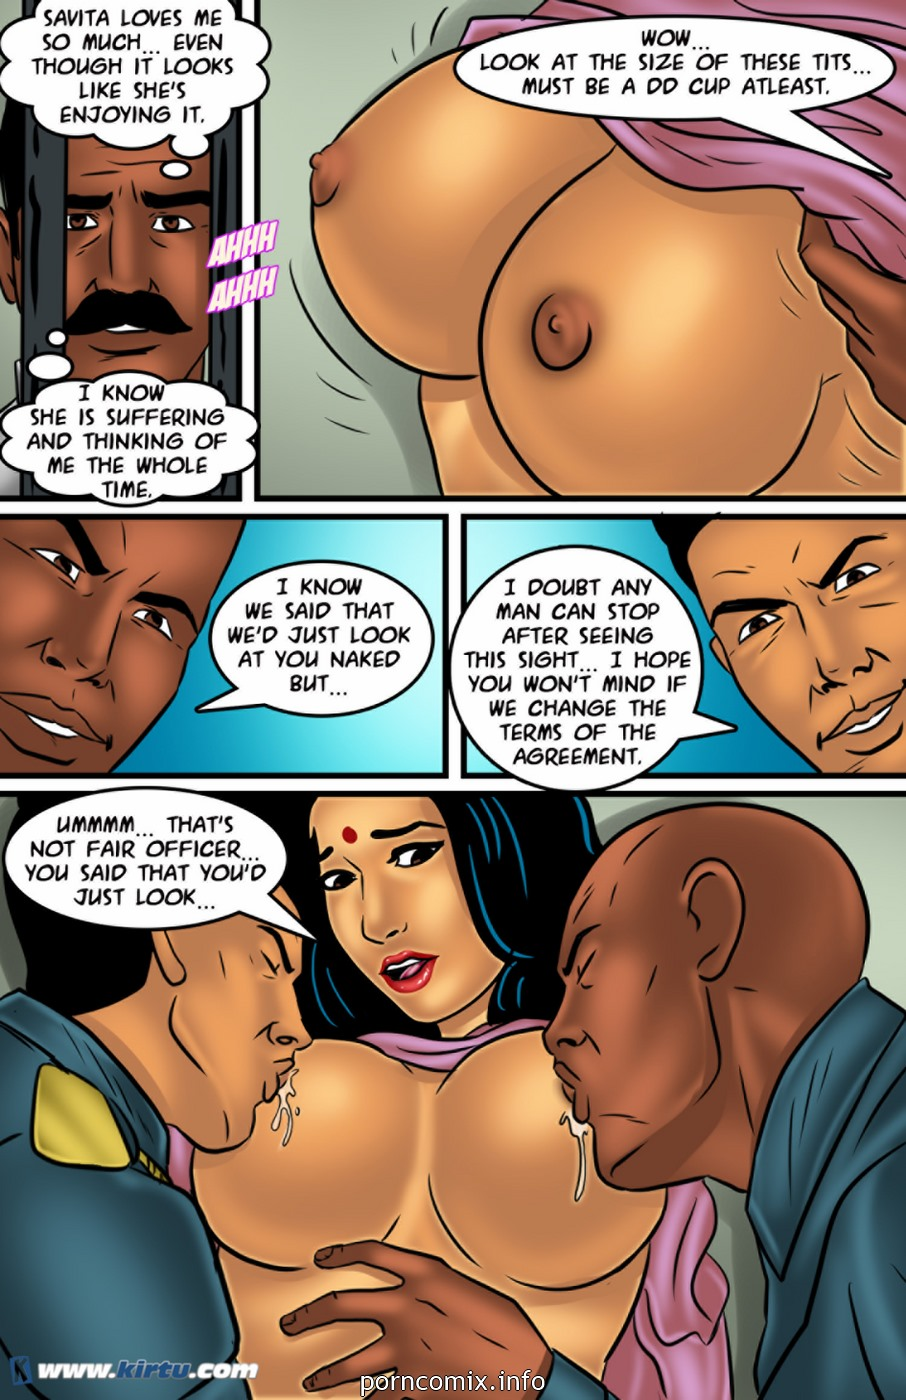 Savita Bhabhi 58- A Wife Sacrifice